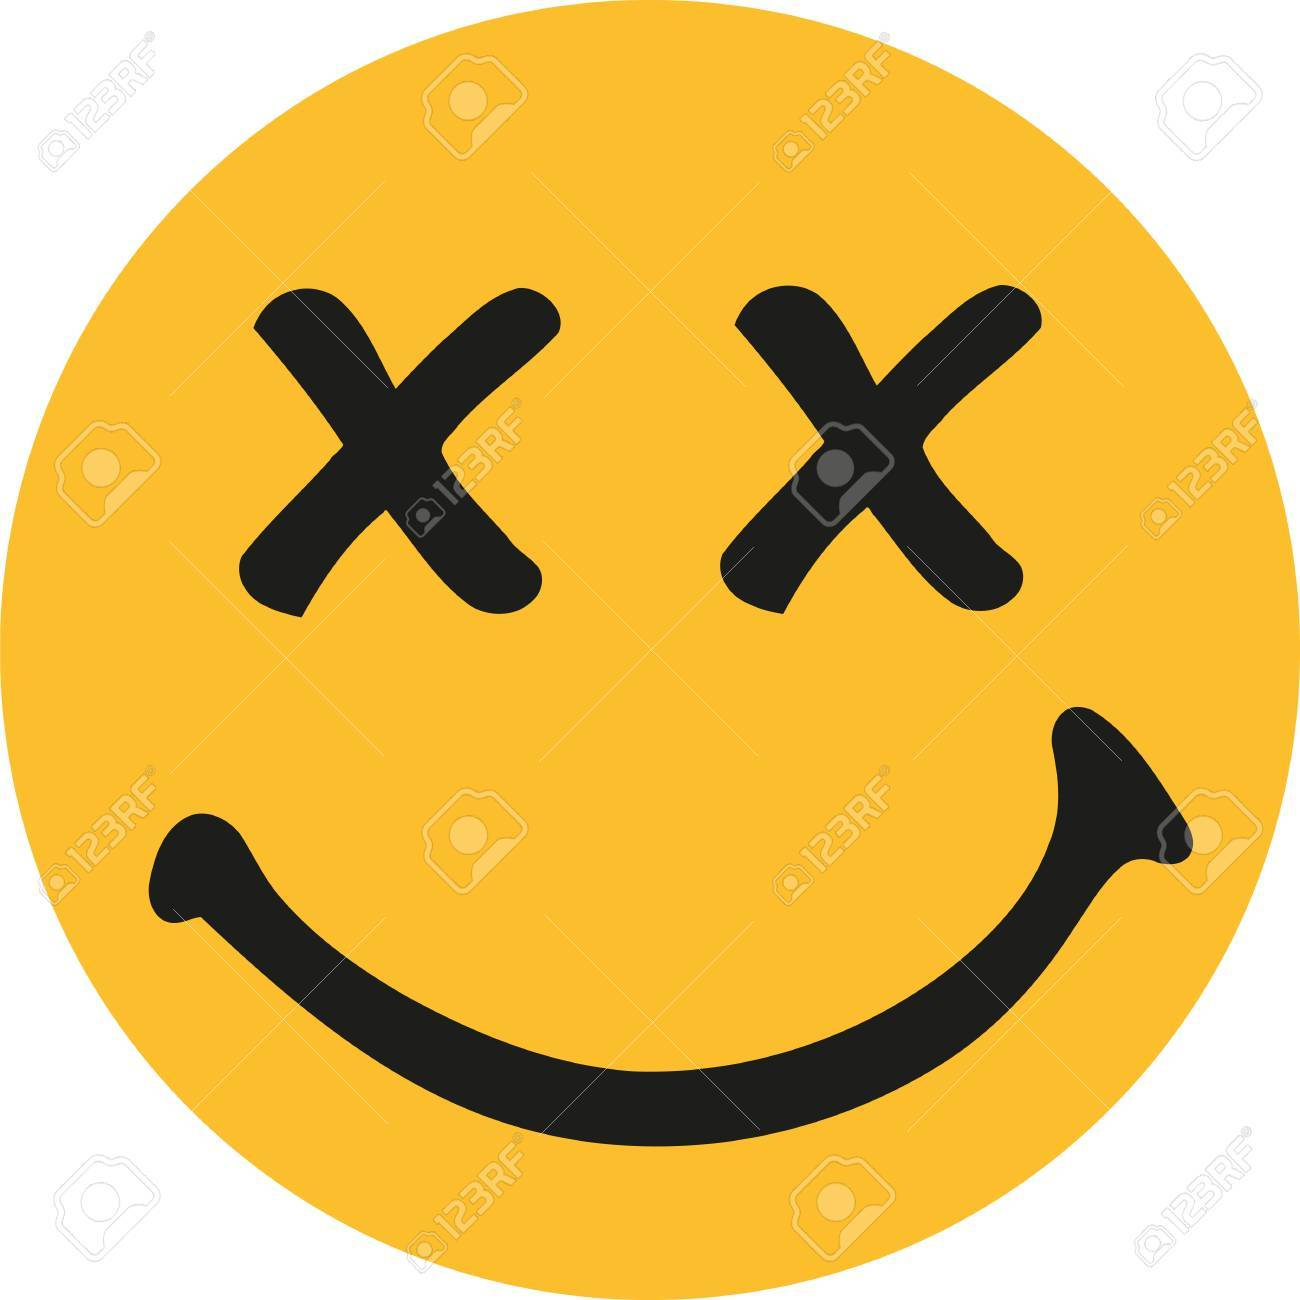 yellow smiley with x-rated eyes royalty free cliparts, vectors, and